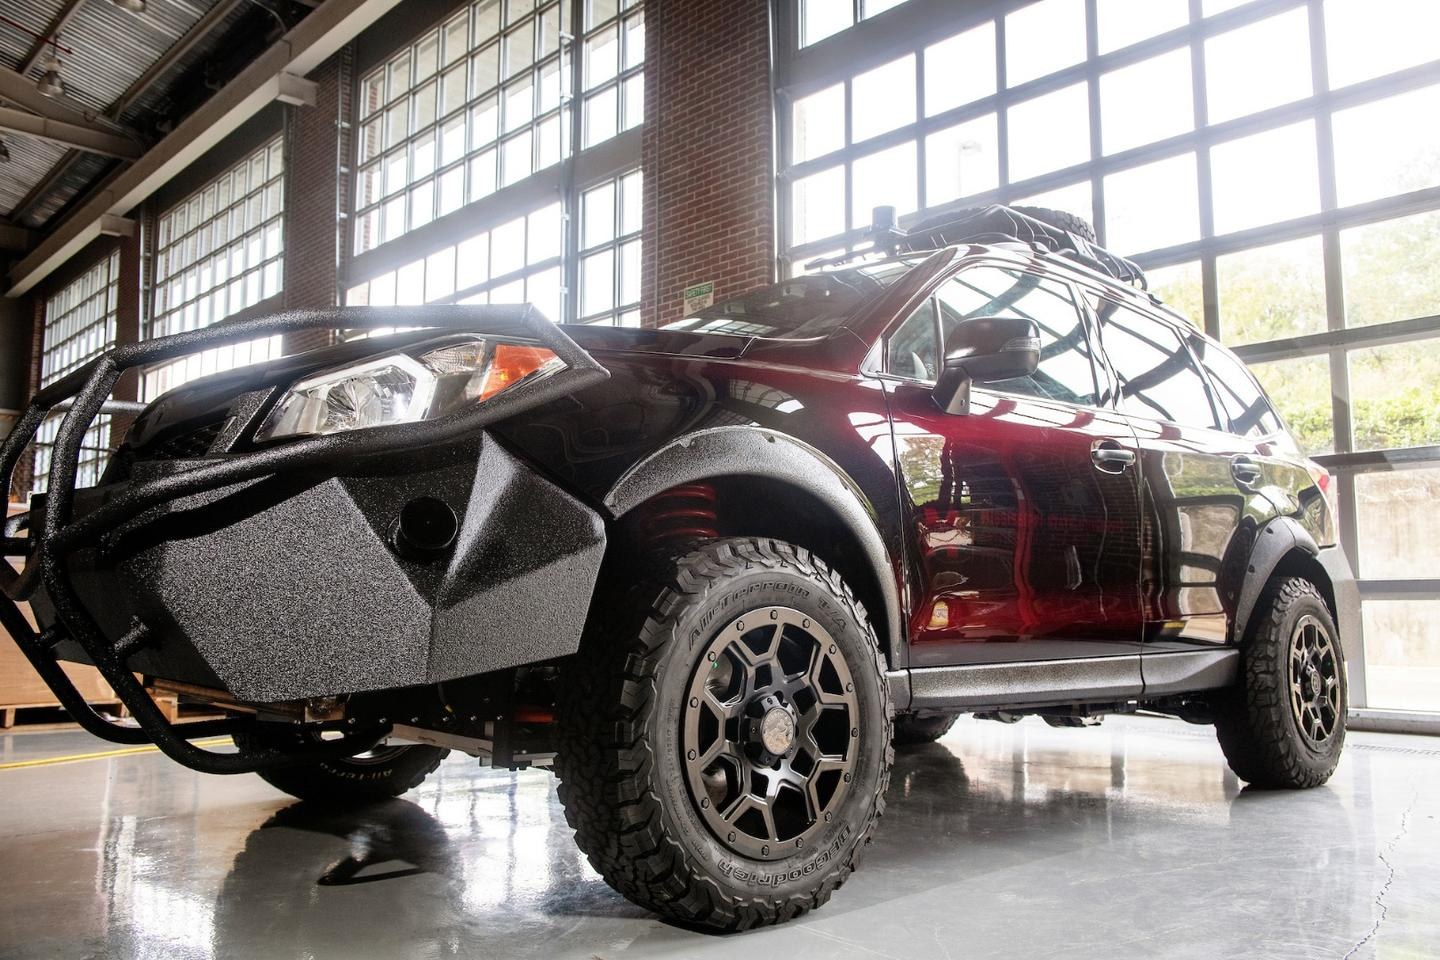 The Mississippi State CAVS team showed the all-electric, autonomous Halo Project off-roader at the recent SEMA Show